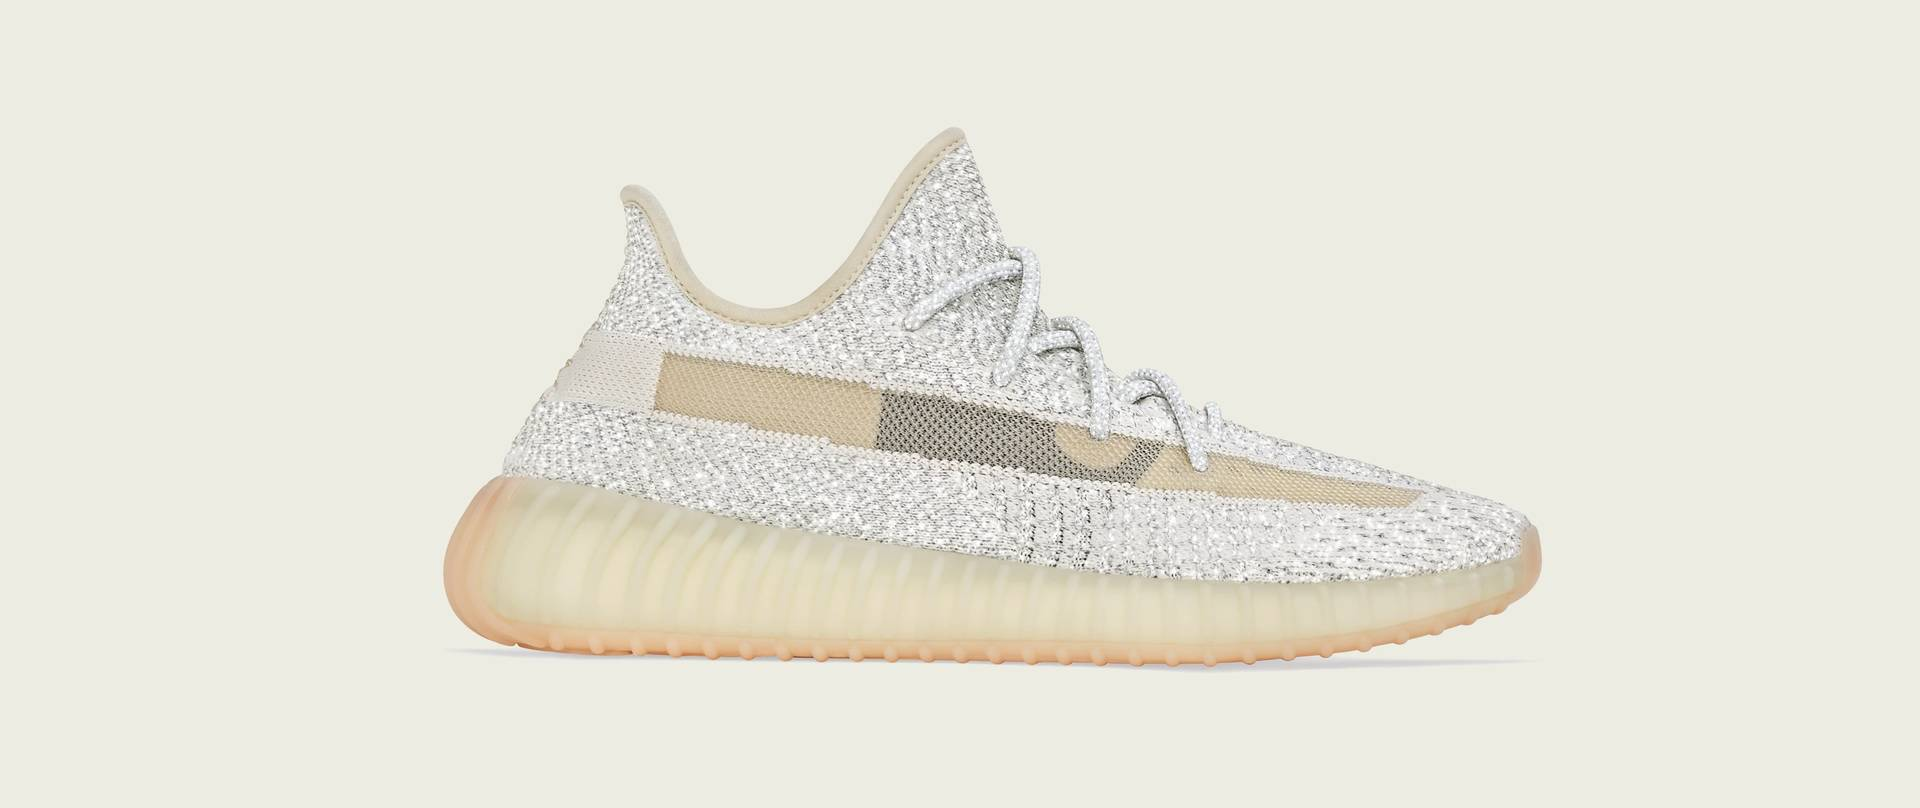 """Adidas Announces Yeezy Boost 350 V2 """"Lundmark"""" Release Details"""